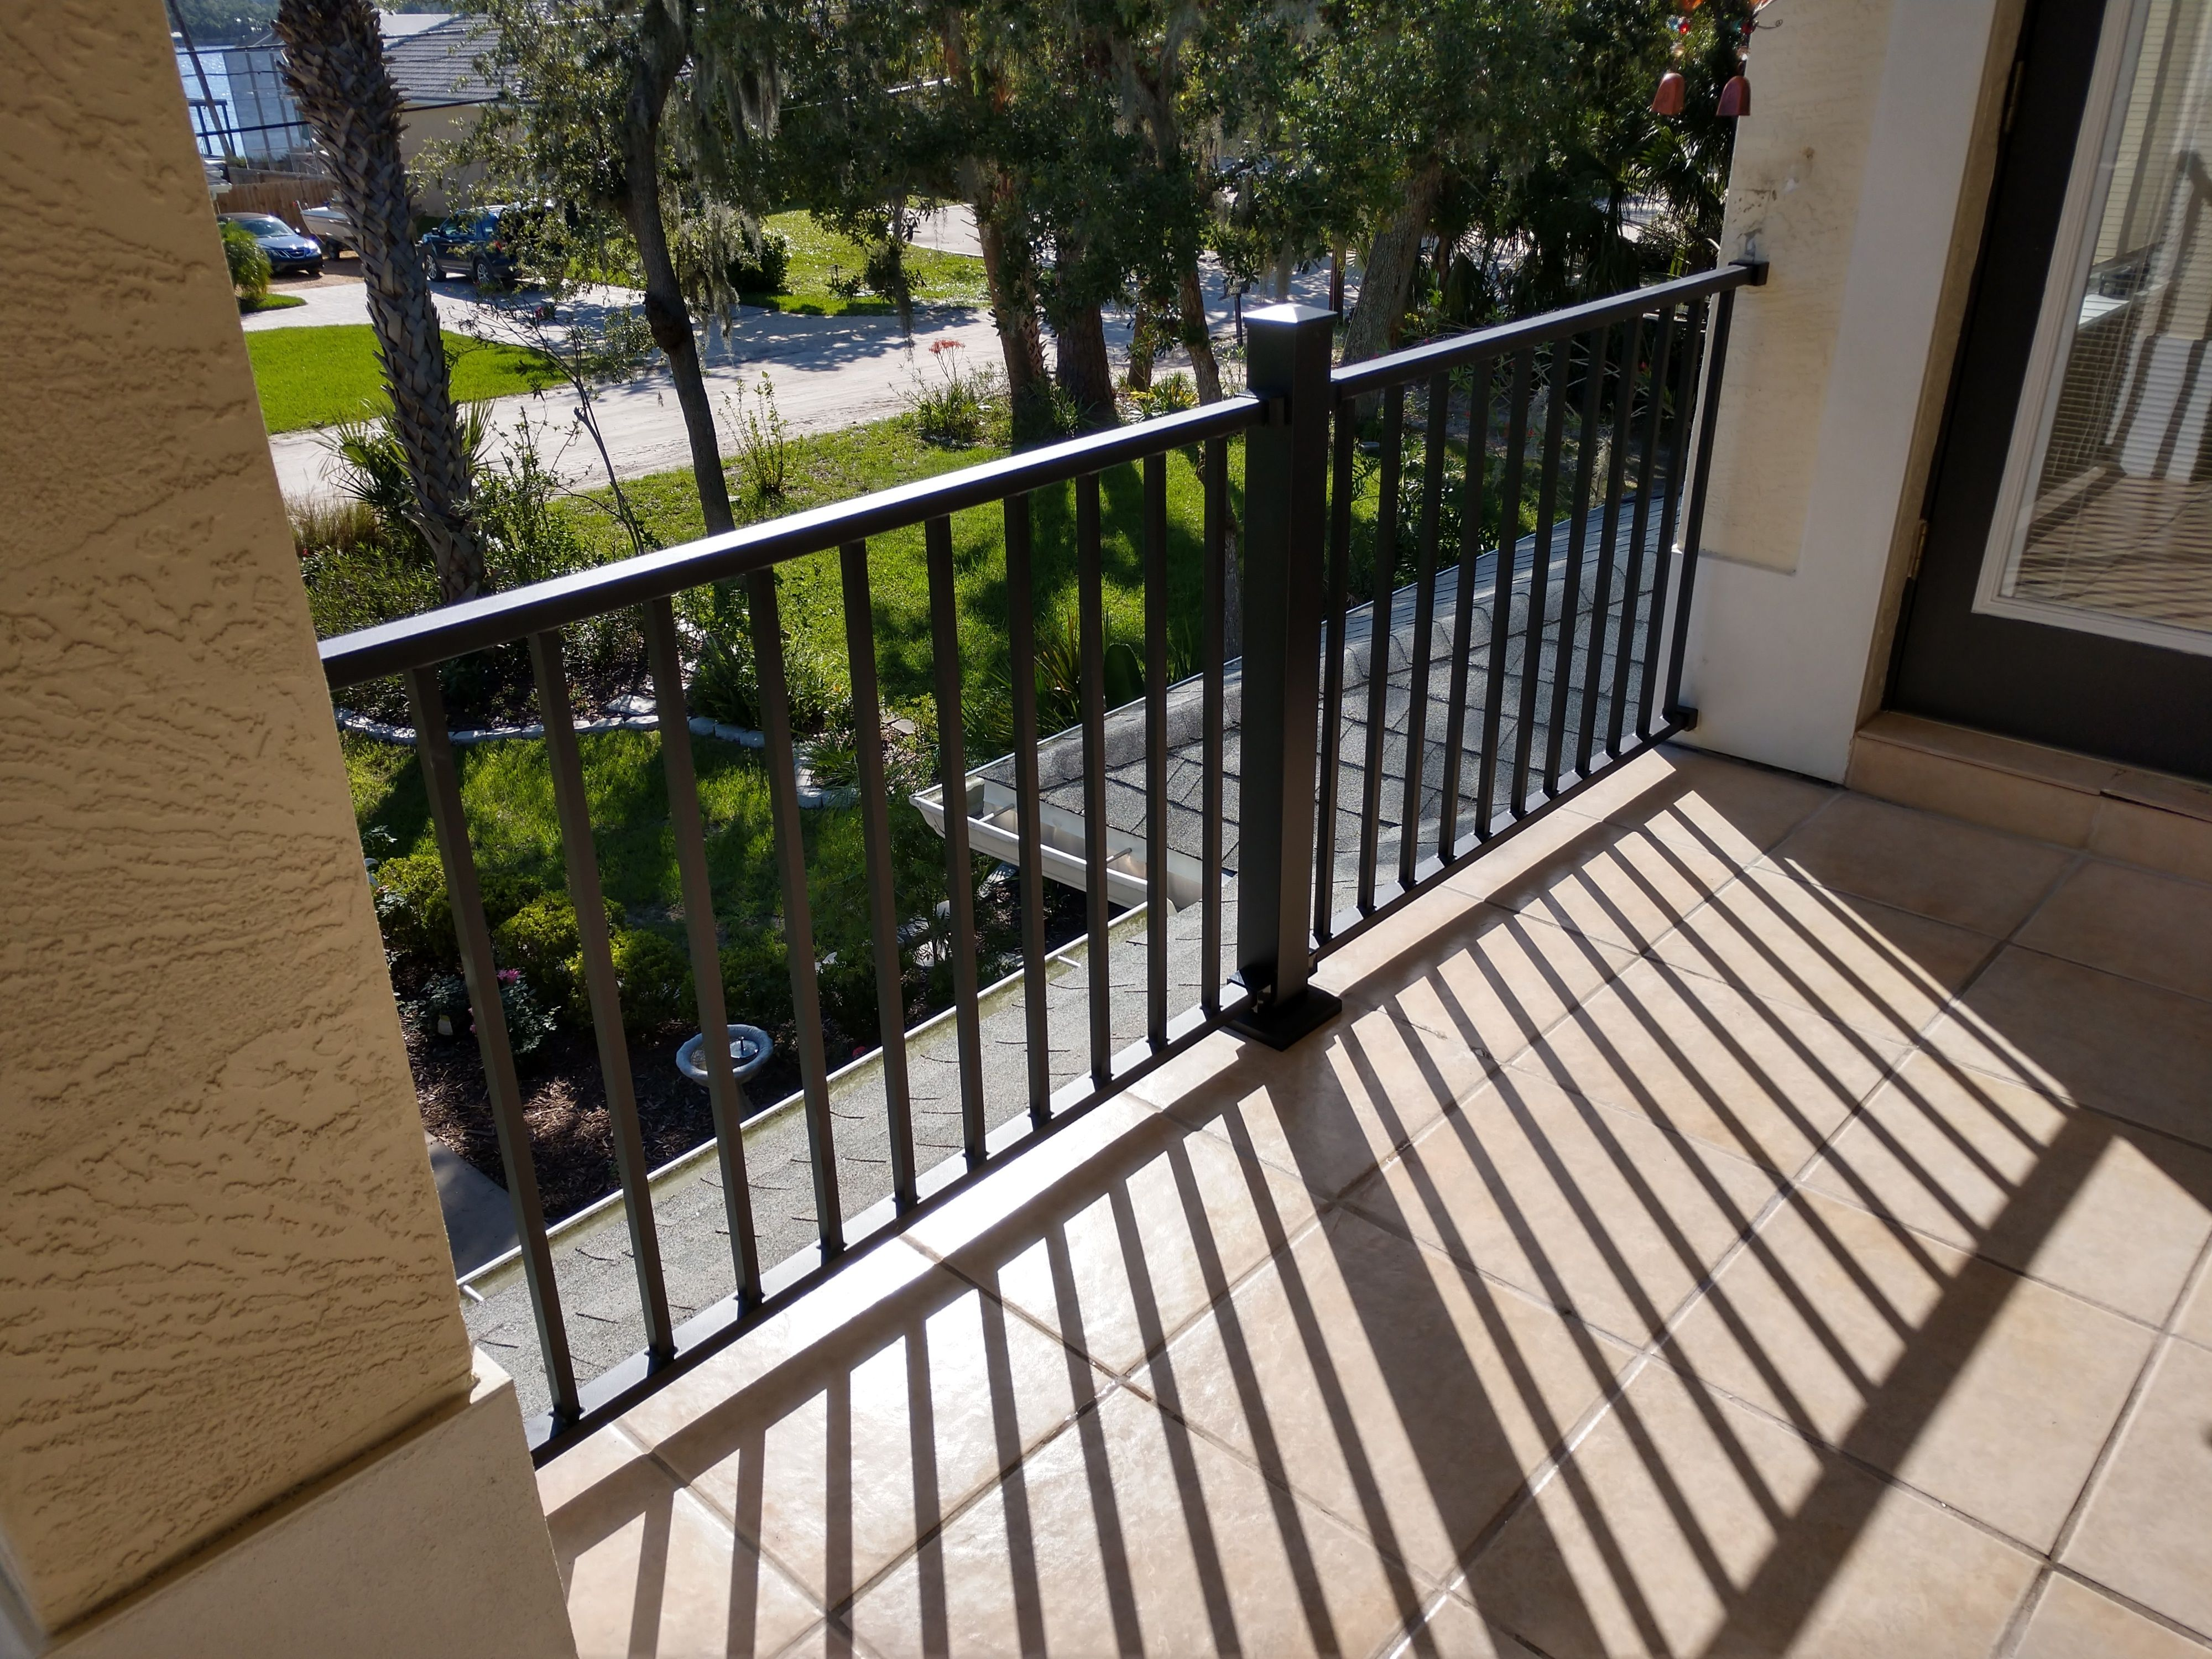 Fortress Al13 Aluminum Railing Panel System Metal Deck Railing Deck Railings Deck Lighting